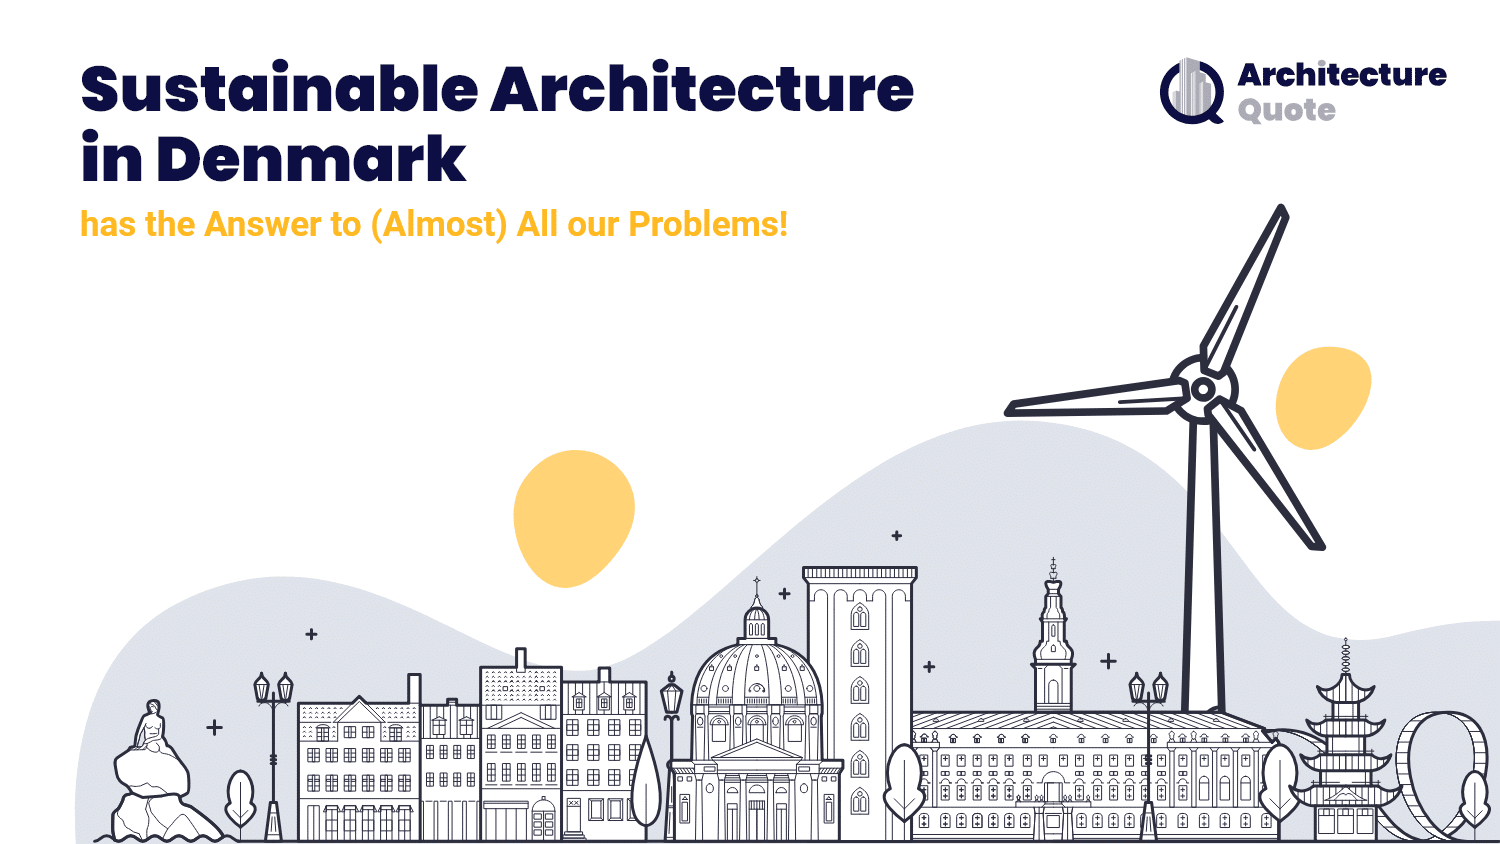 Sustainable Architecture in Denmark Answers (Almost) All our Problems!